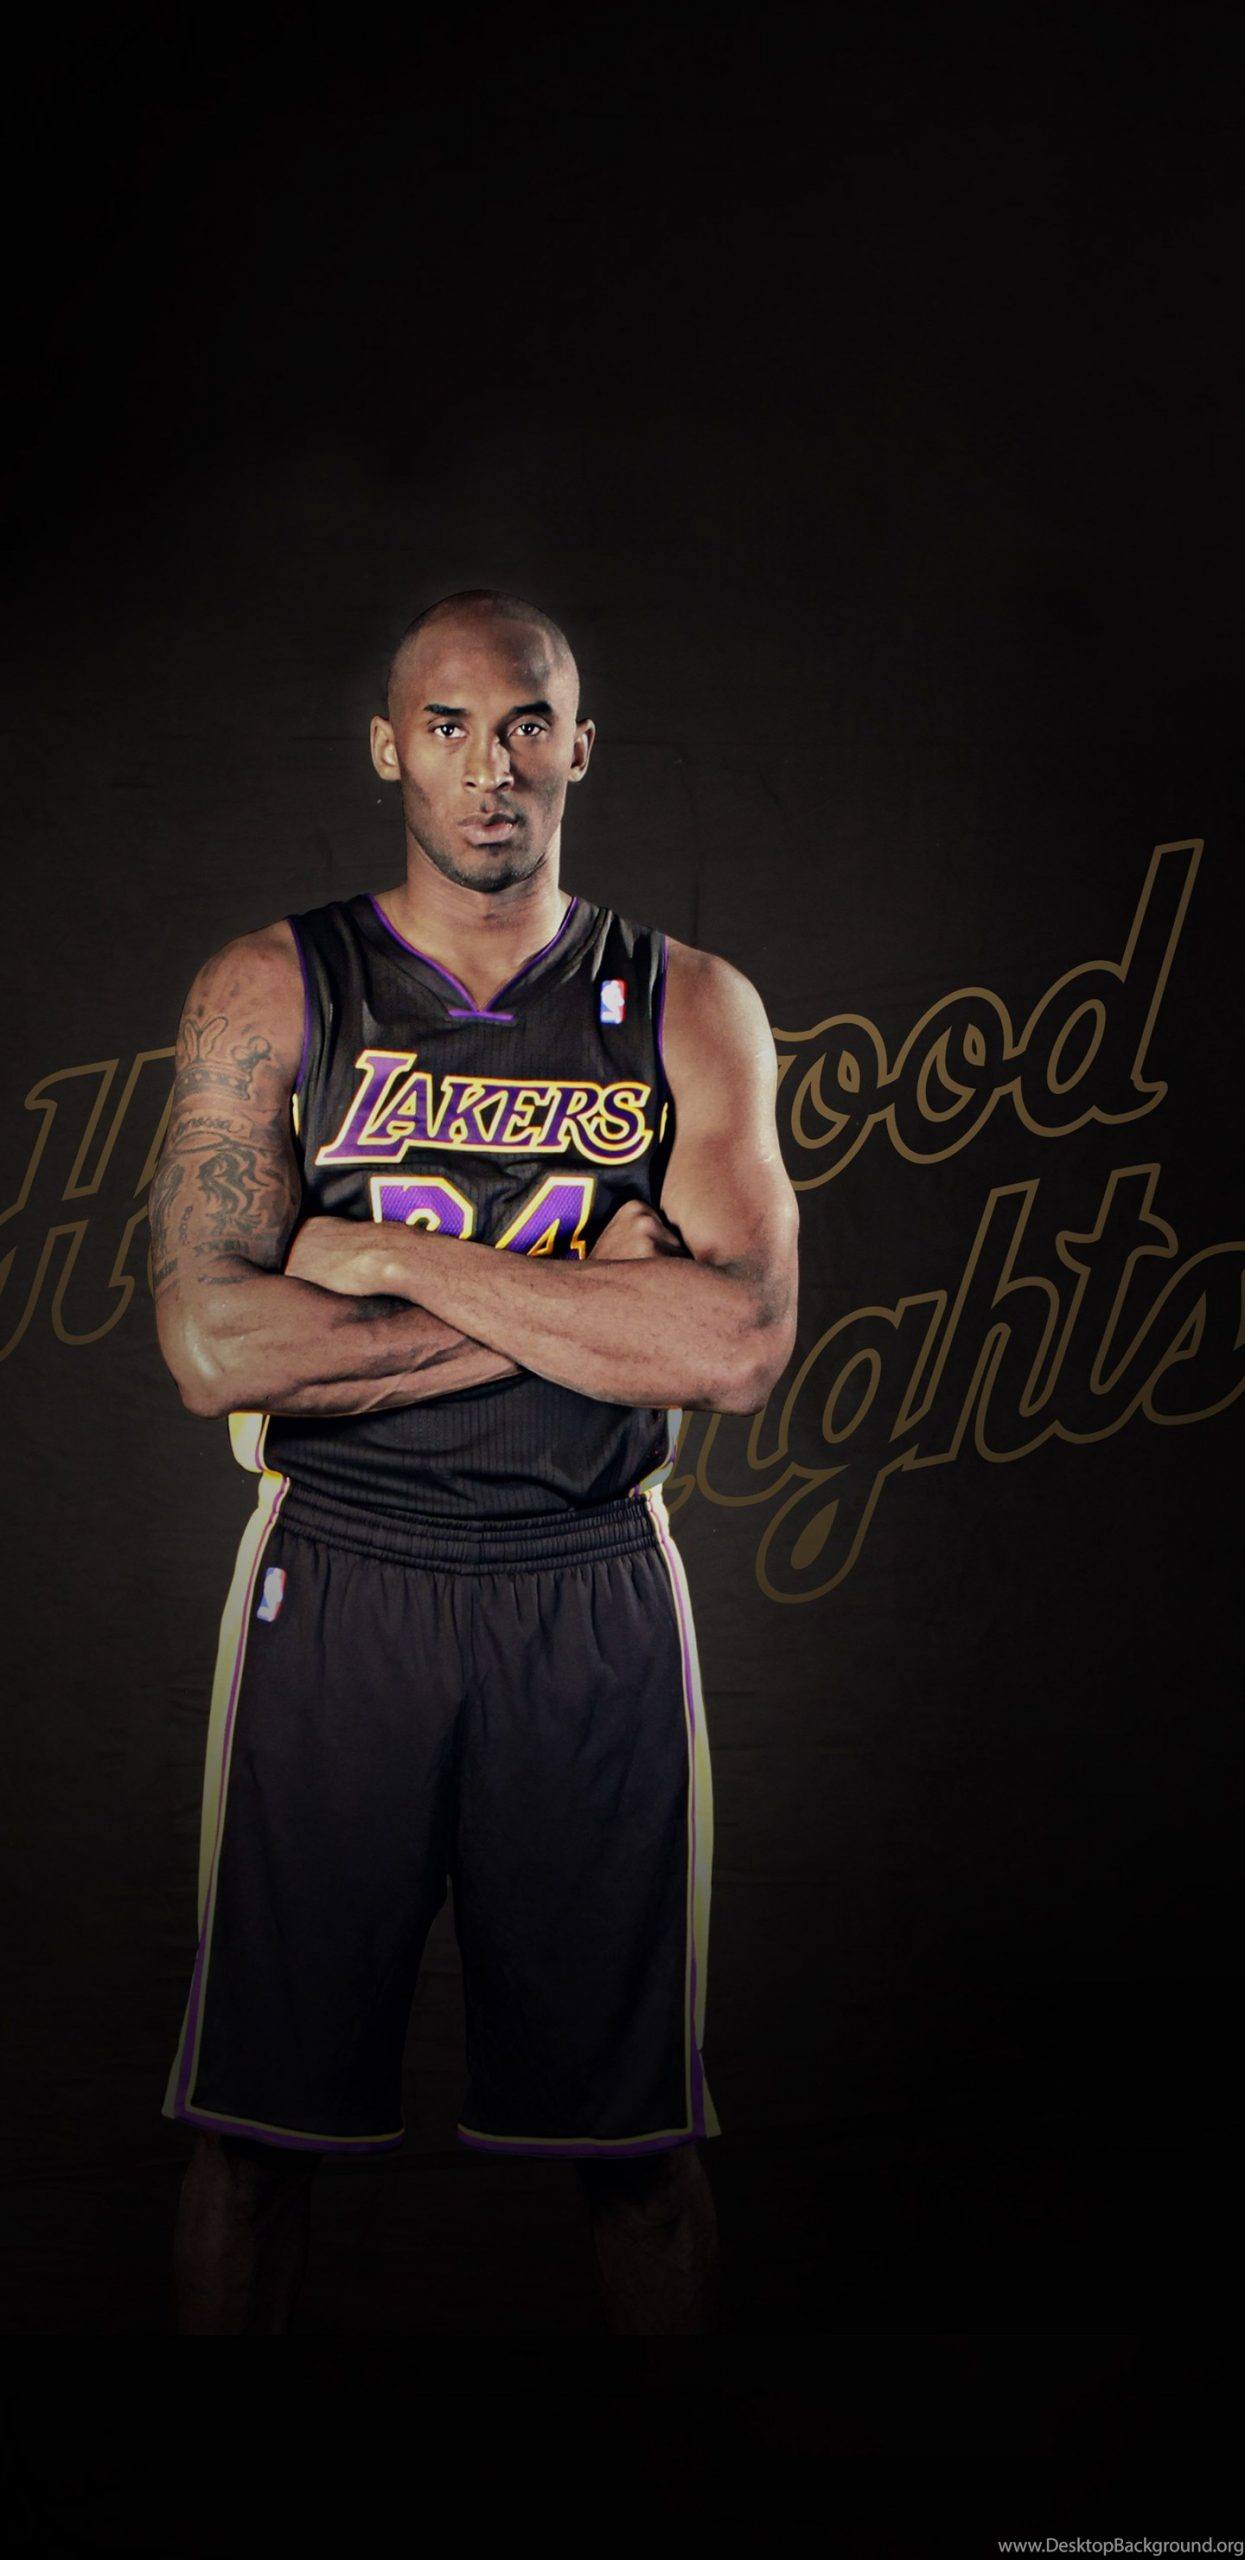 kobe bryant iphone wallpapers full hd 2898x5144 h